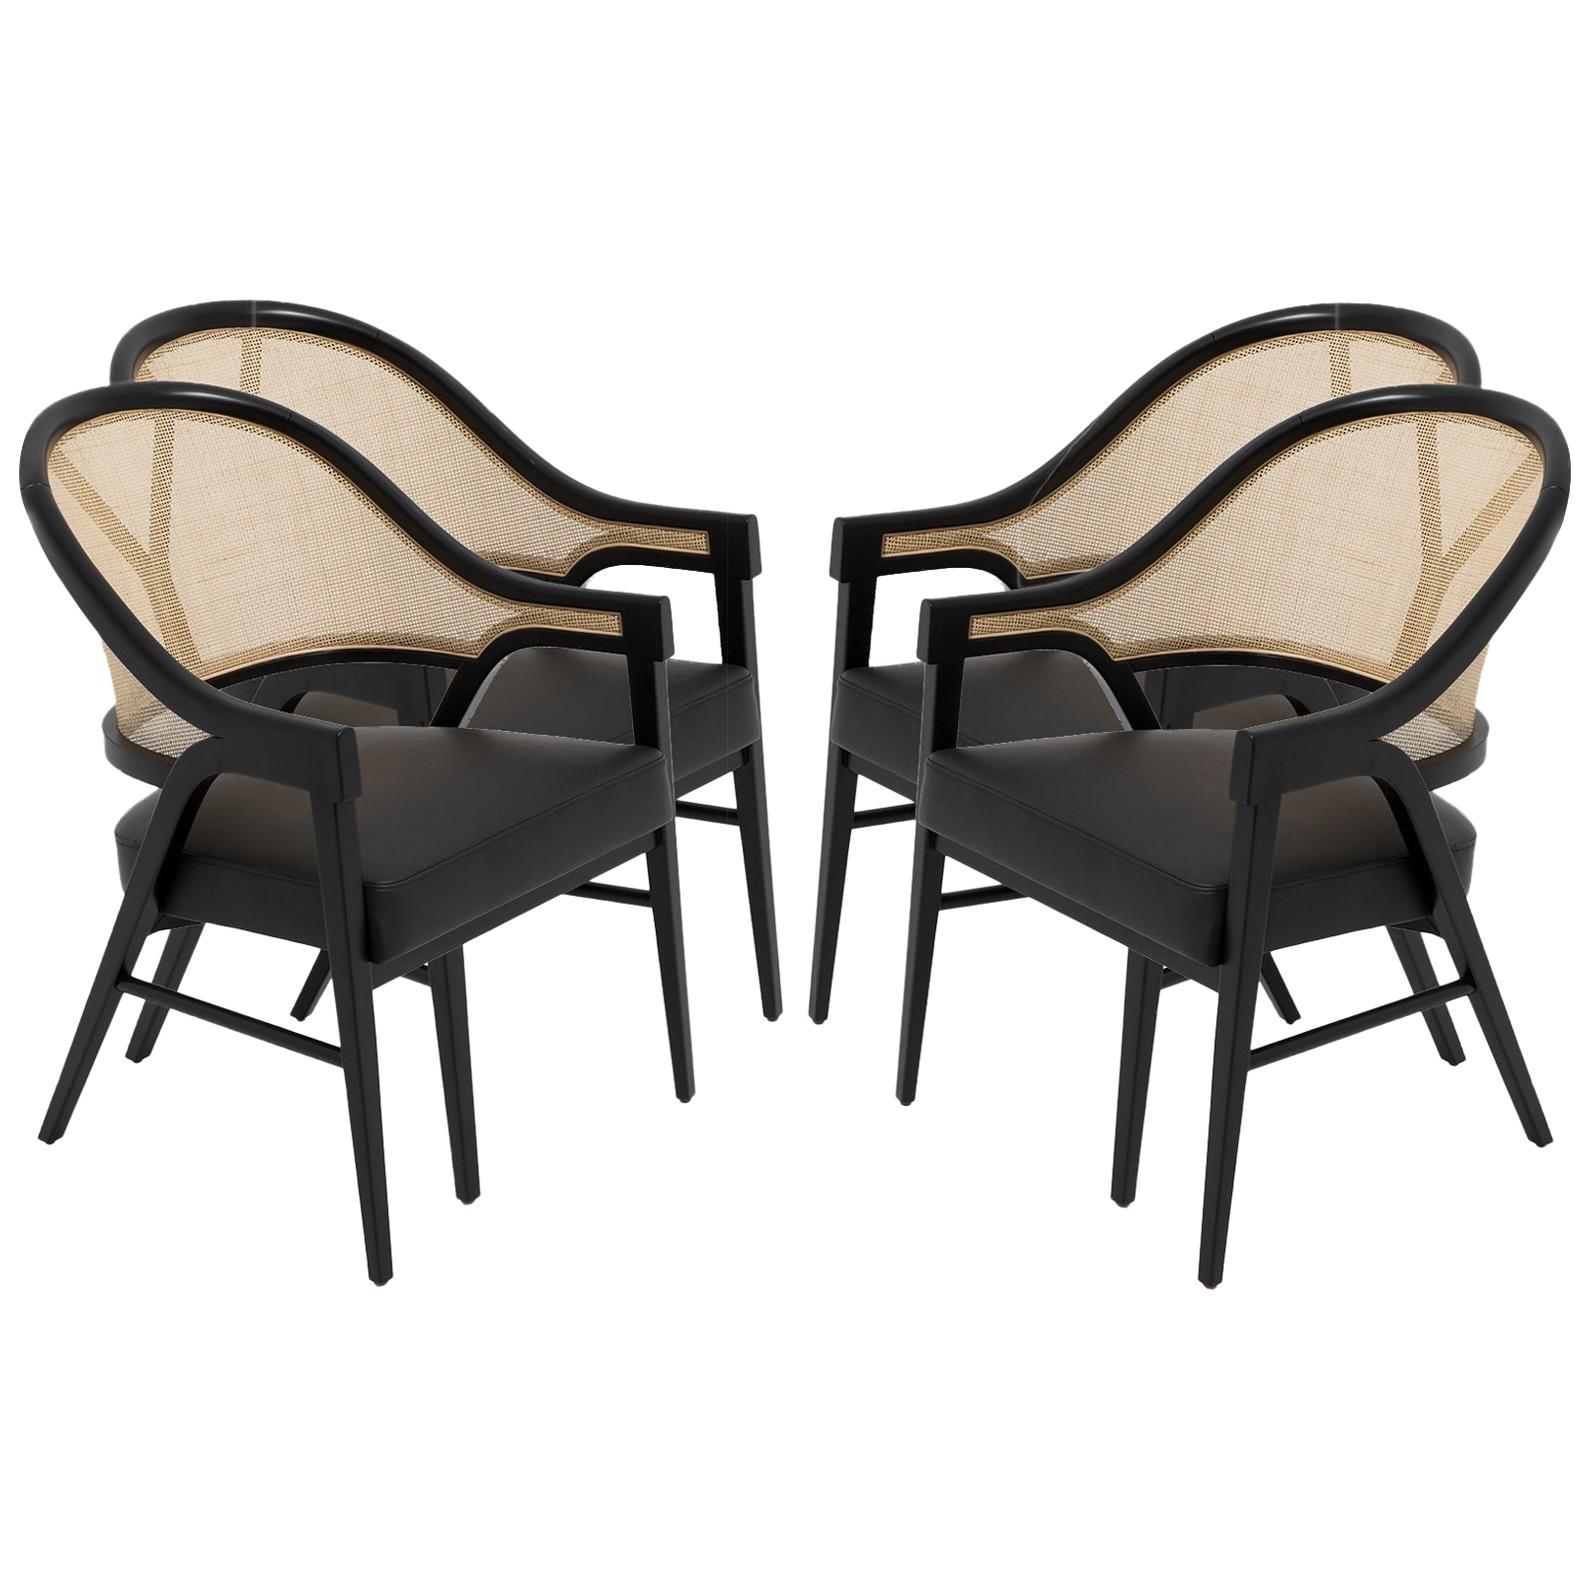 Ordinaire Set Of Four Contemporary Dining Chairs In Cane And Solid Wood For Sale